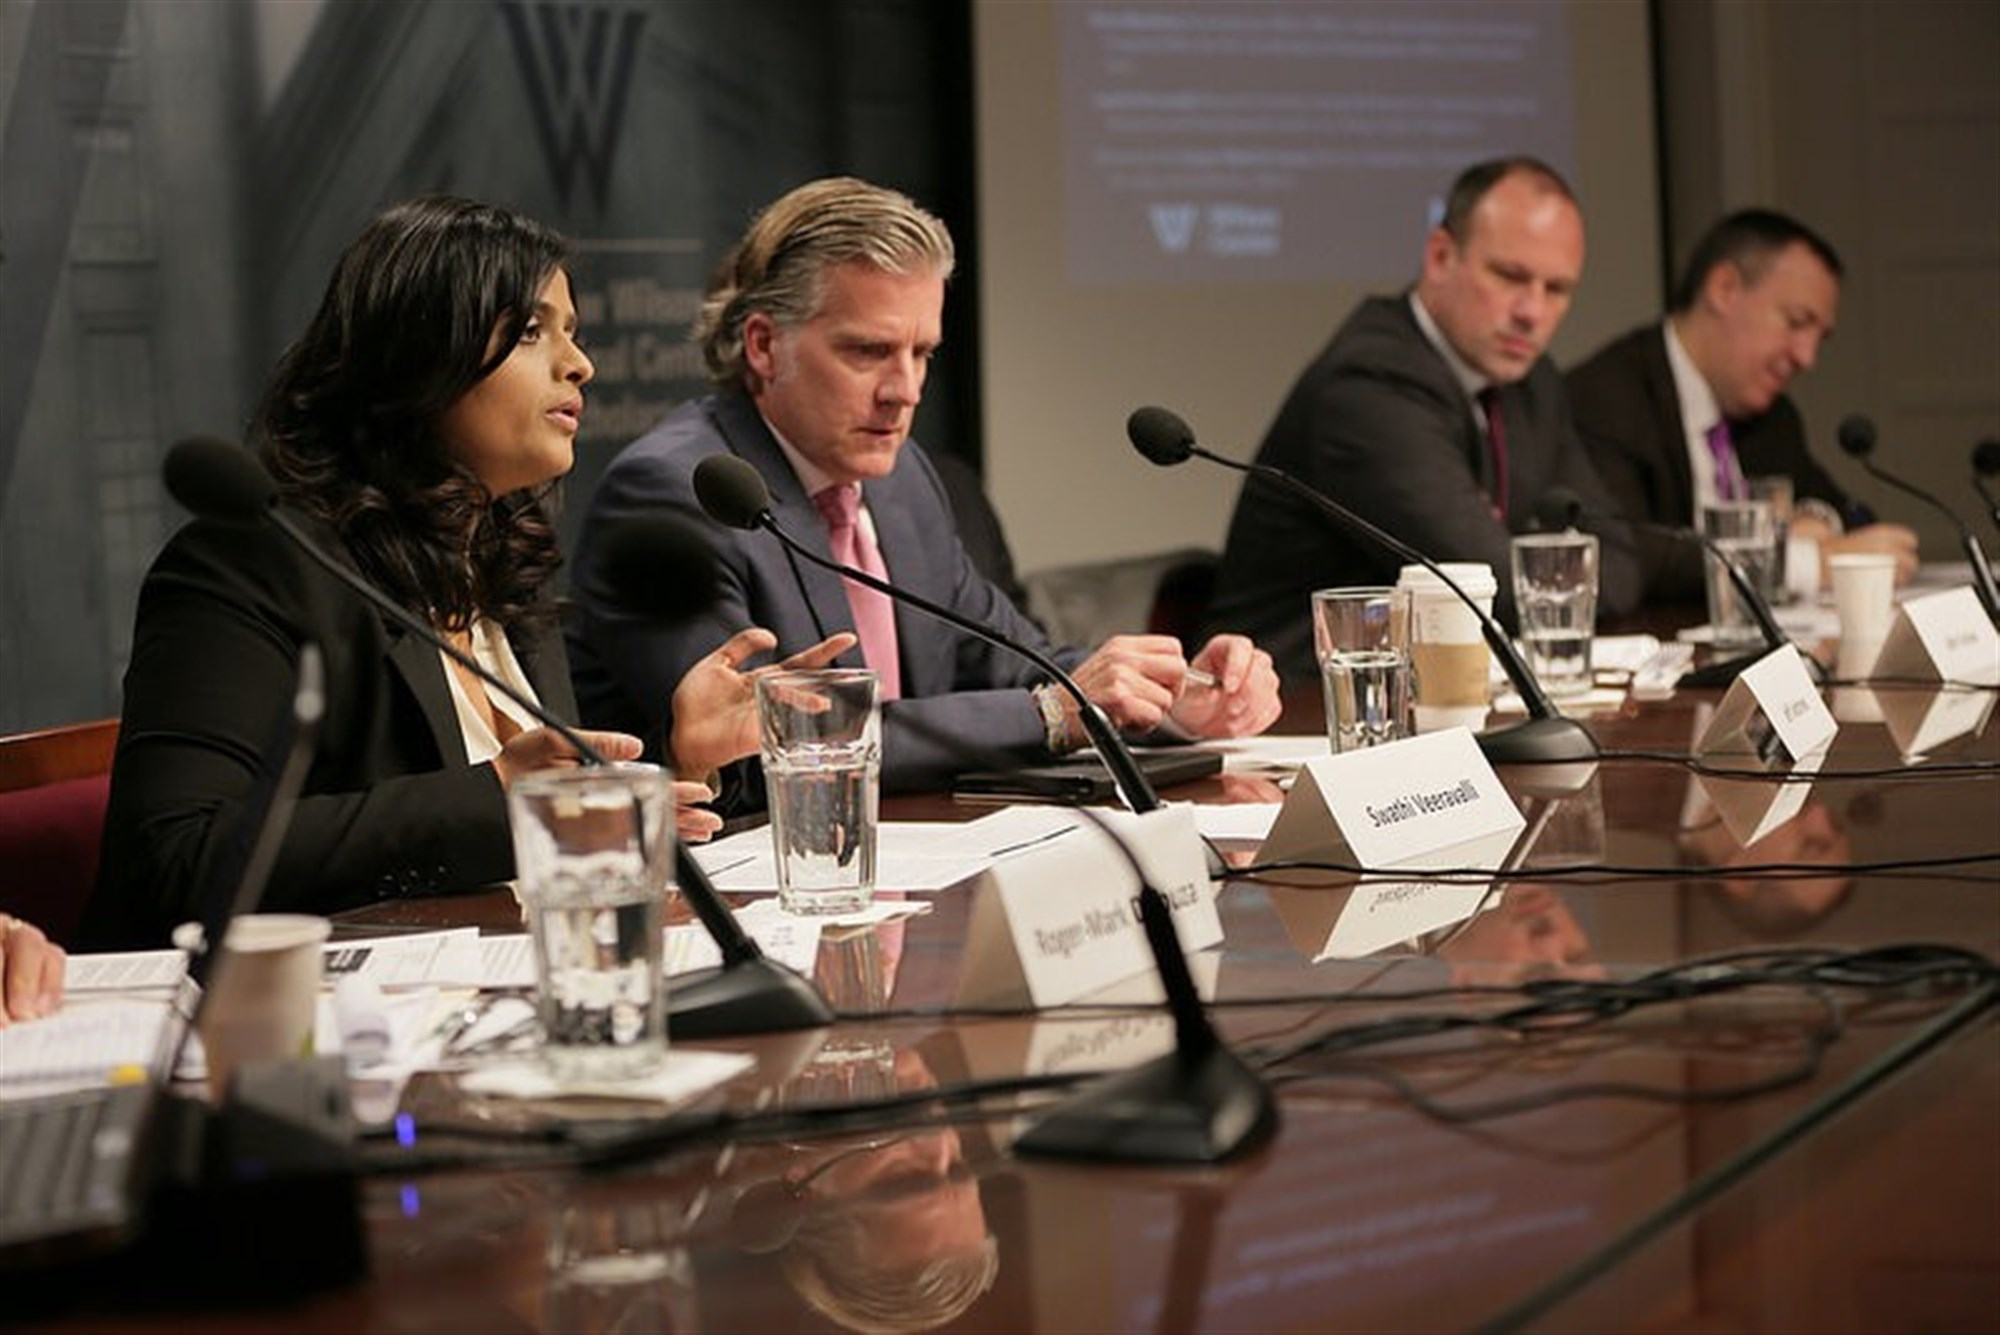 Swathi Veeravalli, Geospatial Research Laboratory, Jeff Andrews, chief of AFRICOM Environmental Security,  Rene Nijenhuis, Joint United Nations Environment Program/Office for the Coordination of Humanitarian Affairs, Carl Bruch, Environmental Law Institute.   Photo courtesy of Wilson Center.